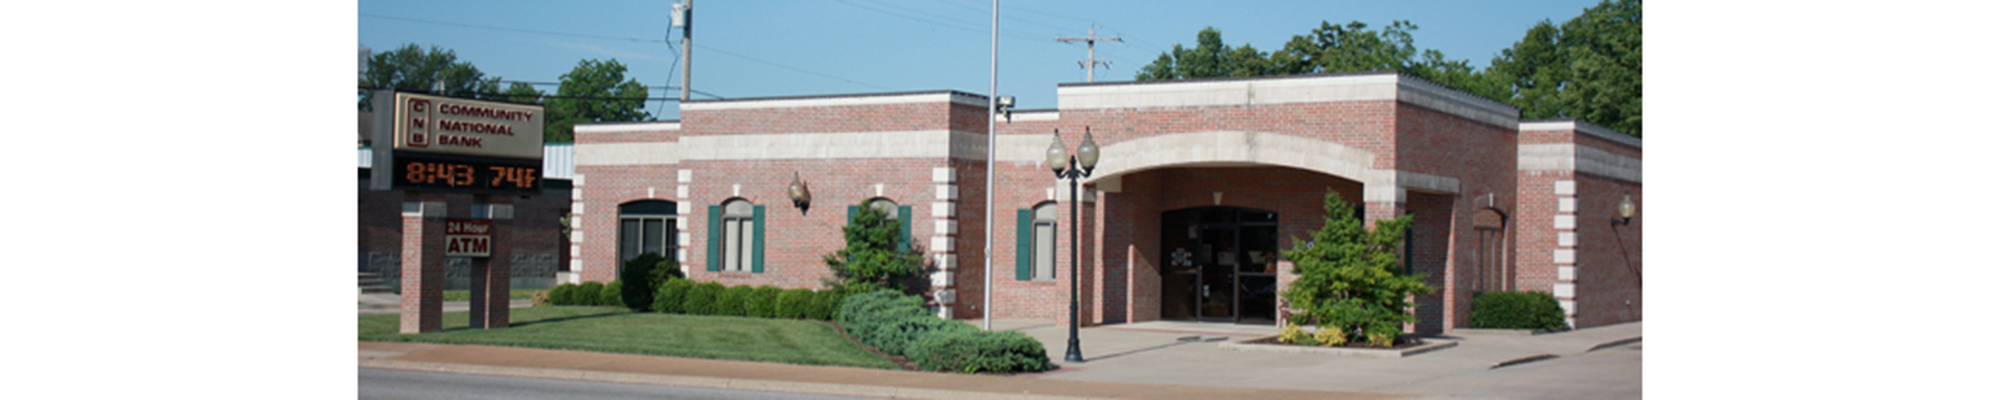 parsons banking center